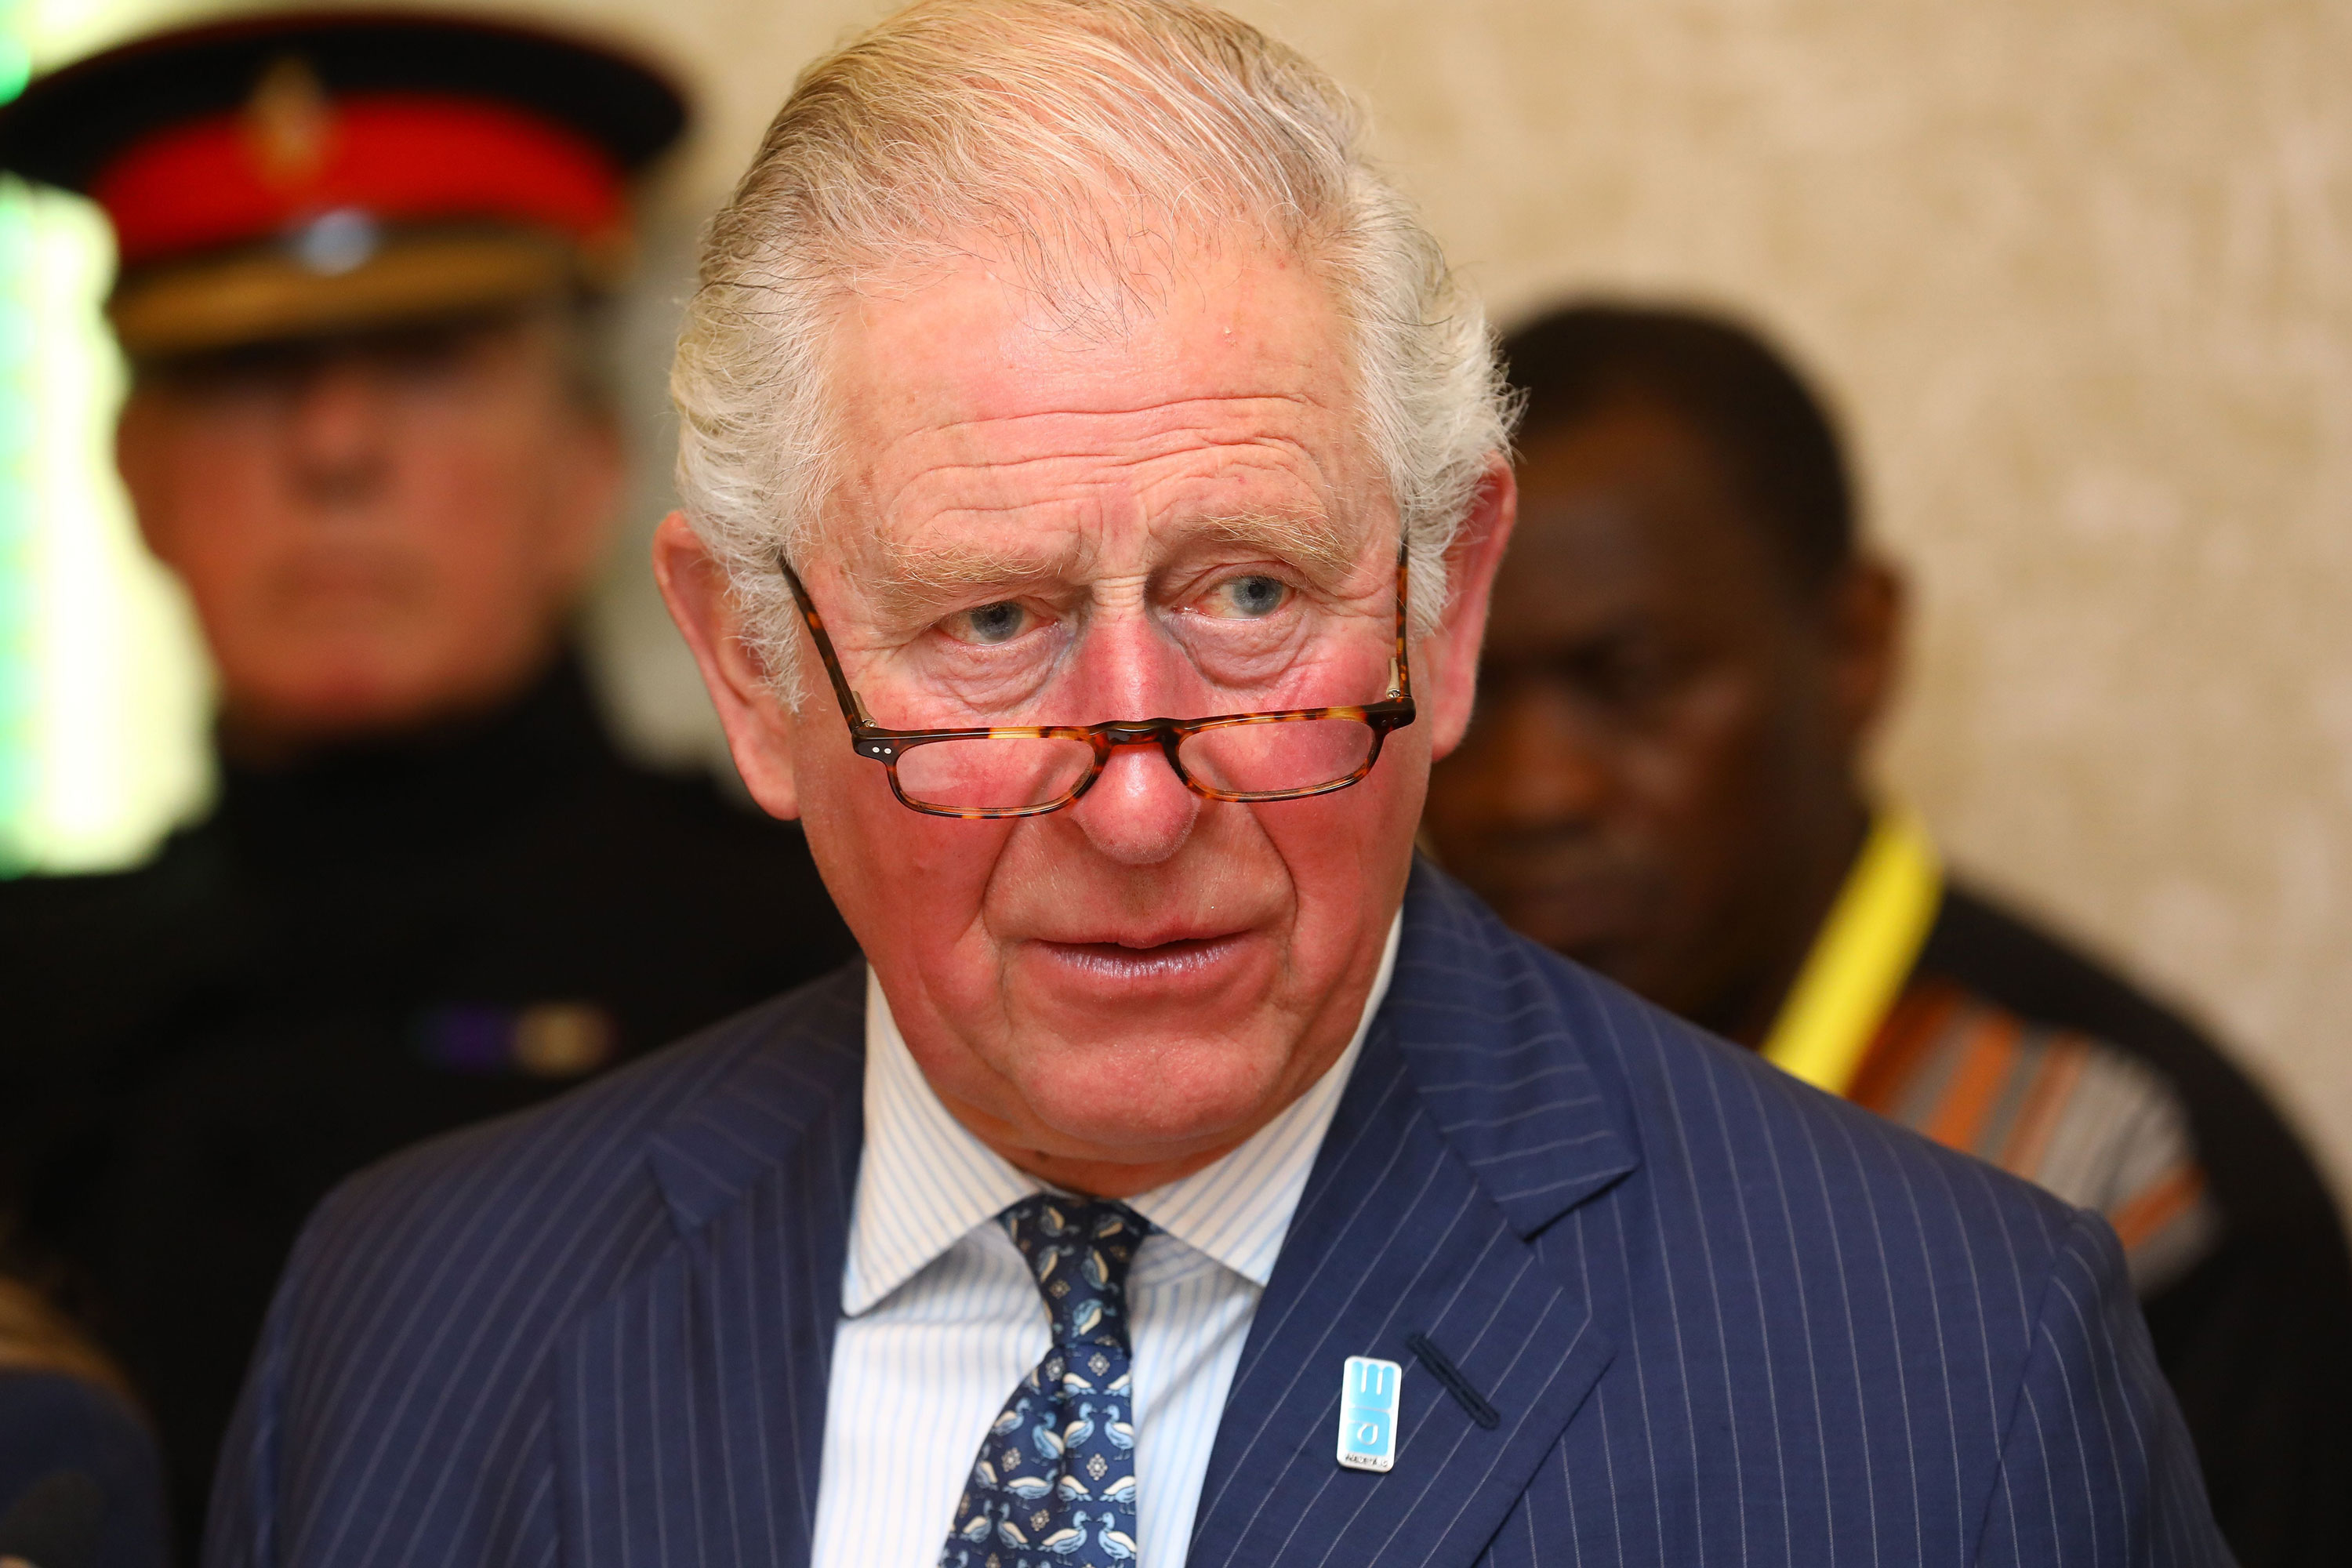 Prince Charles is pictured on March 10.